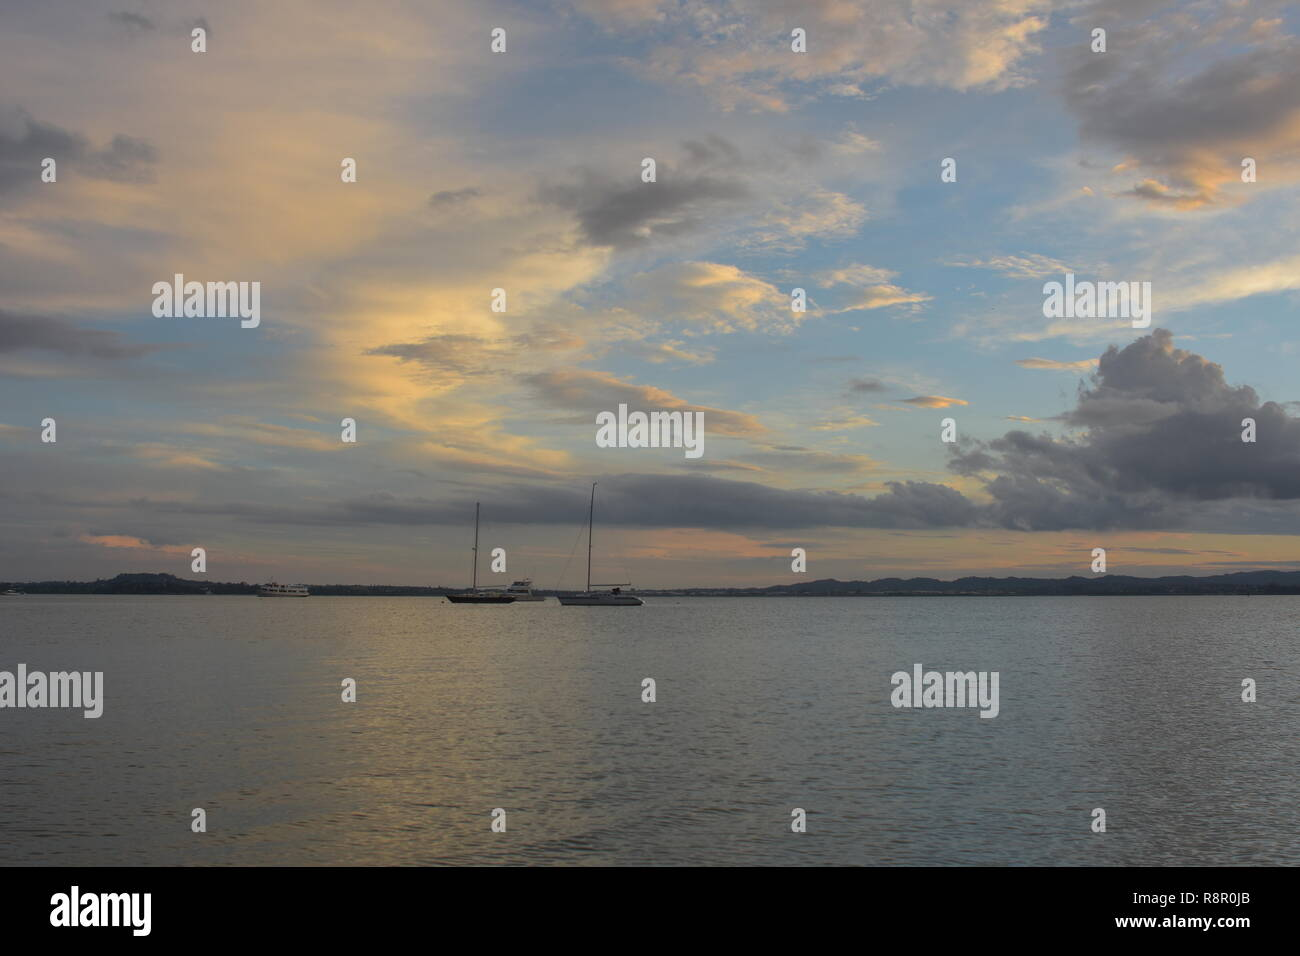 Calm surface of Waitemata Harbour reflecting sun light with moored sailing boats and distant land in background in cloudy evening. - Stock Image